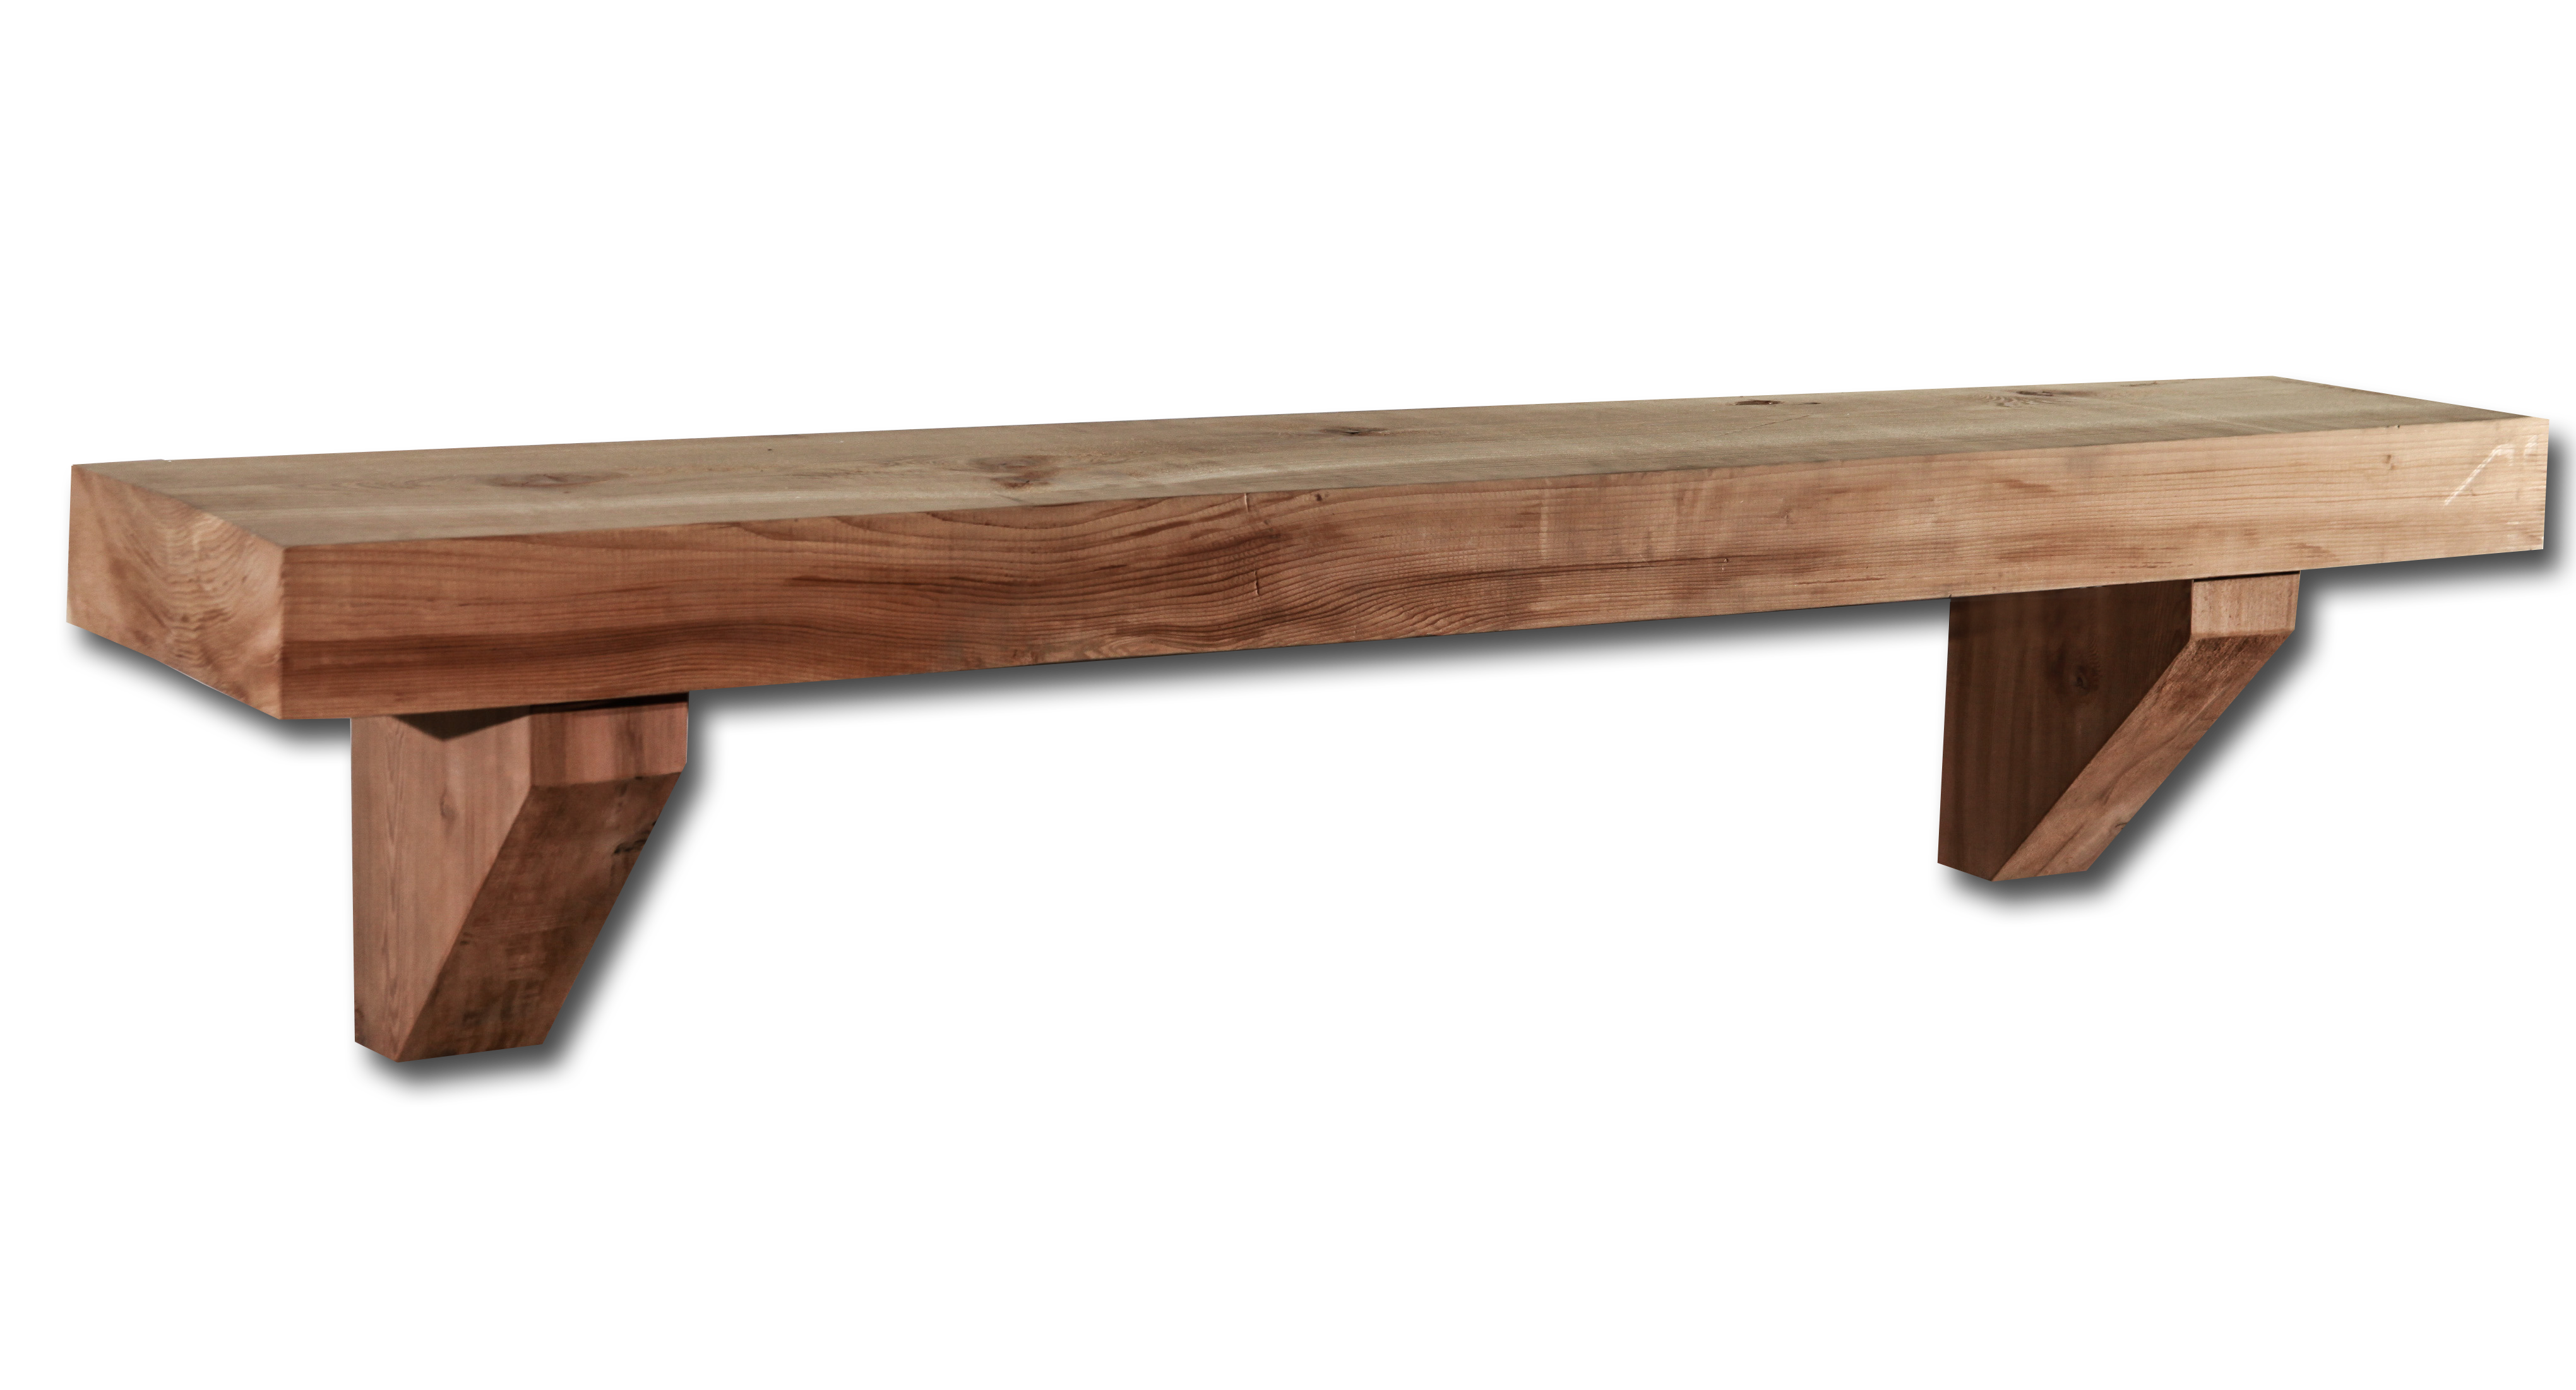 Unfinished Cedar Mantel